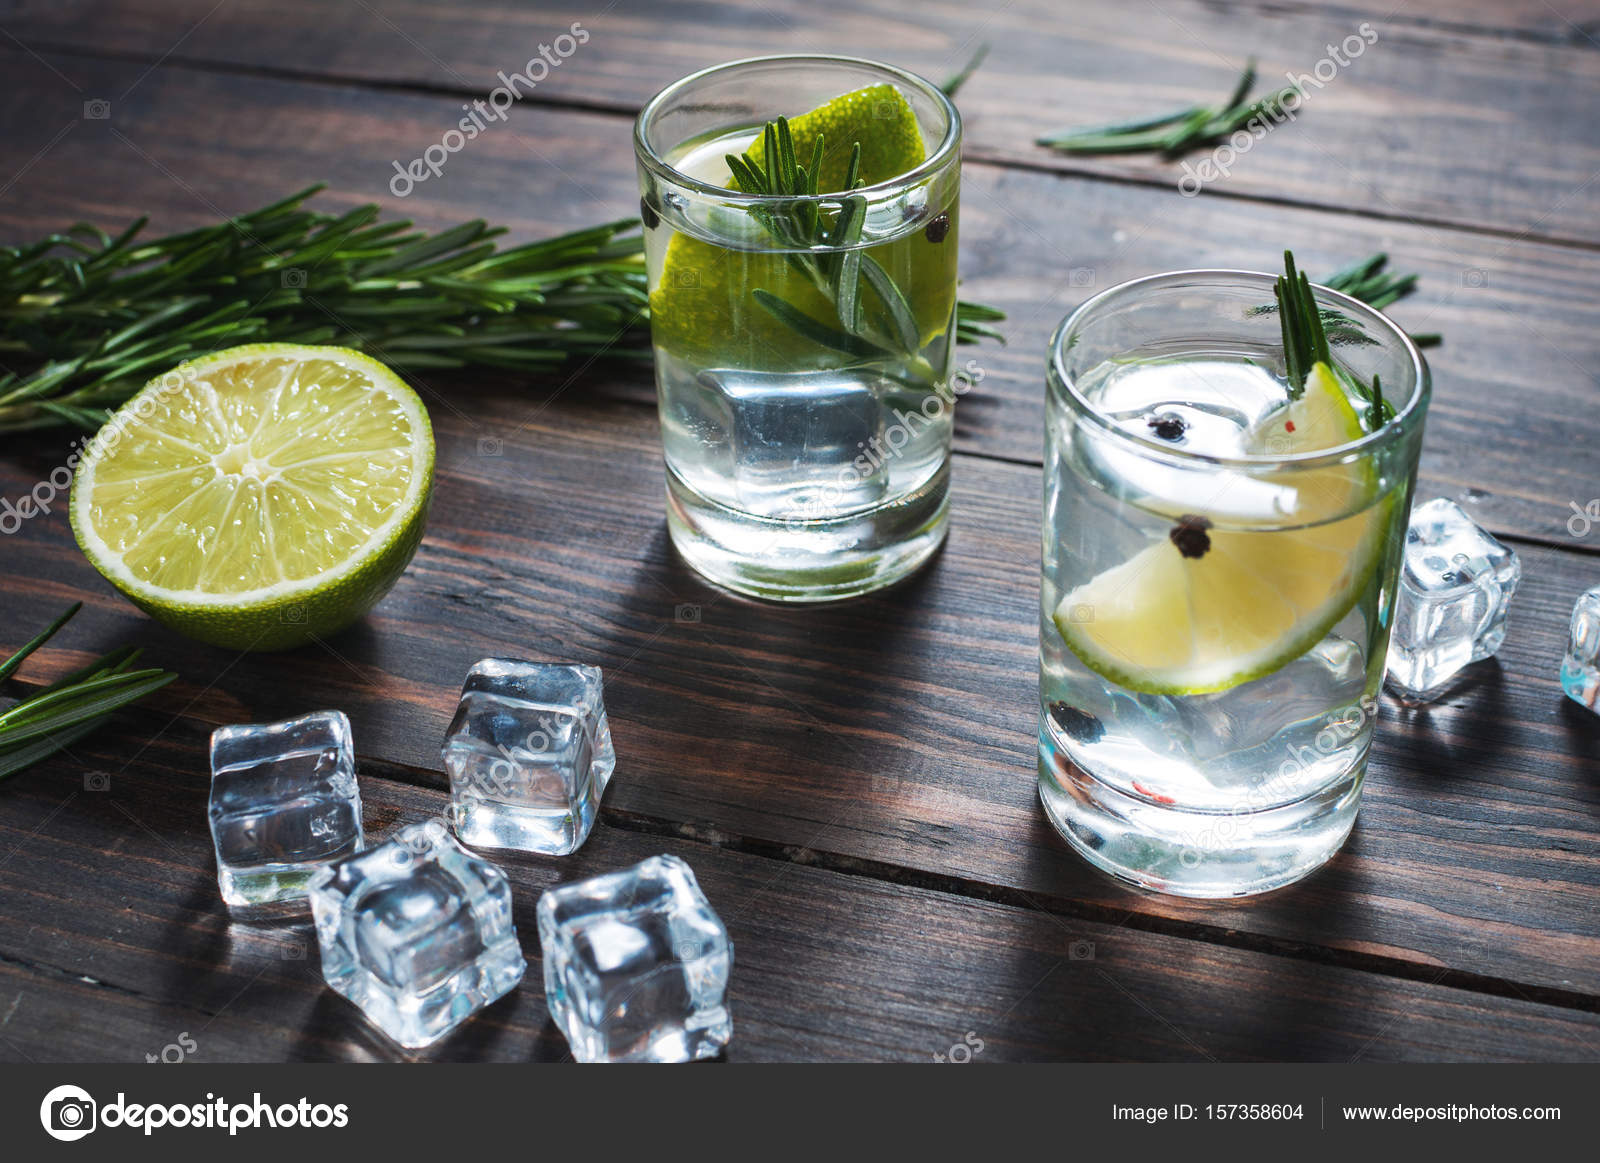 alkoholisches getr nk gin tonic cocktail mit limette. Black Bedroom Furniture Sets. Home Design Ideas